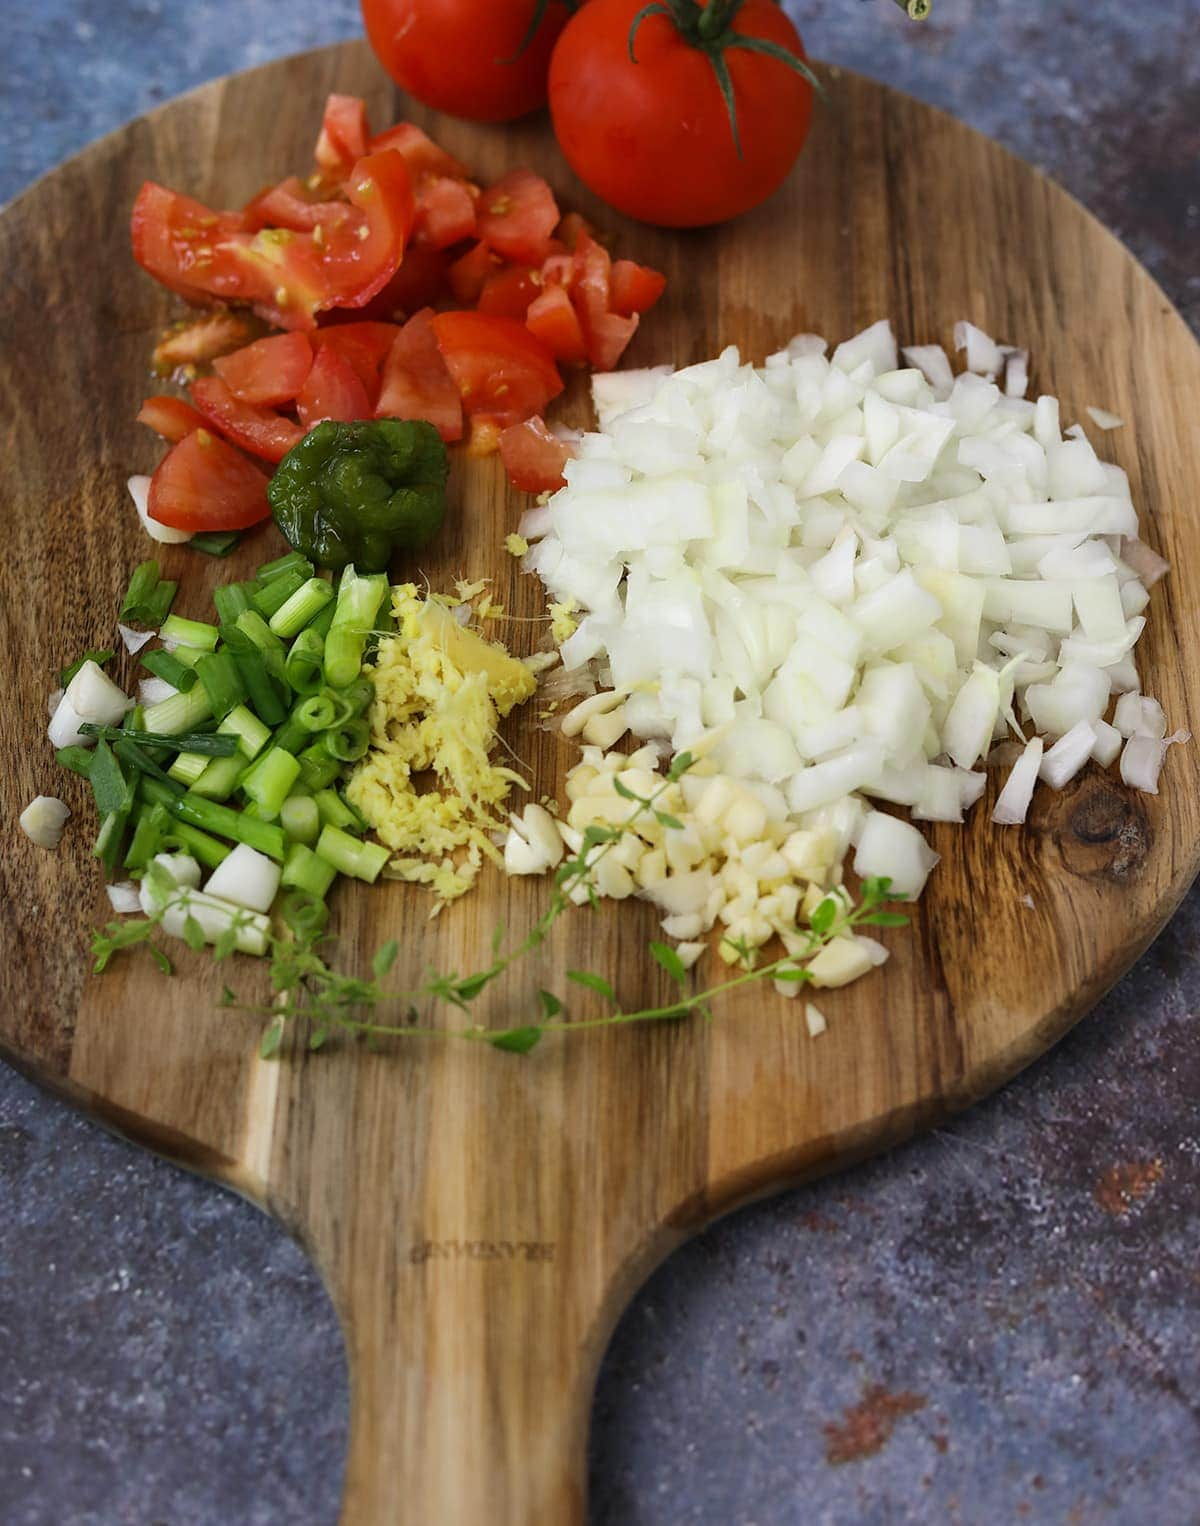 Ingredients for kidney bean curry on a wooden board on blue background